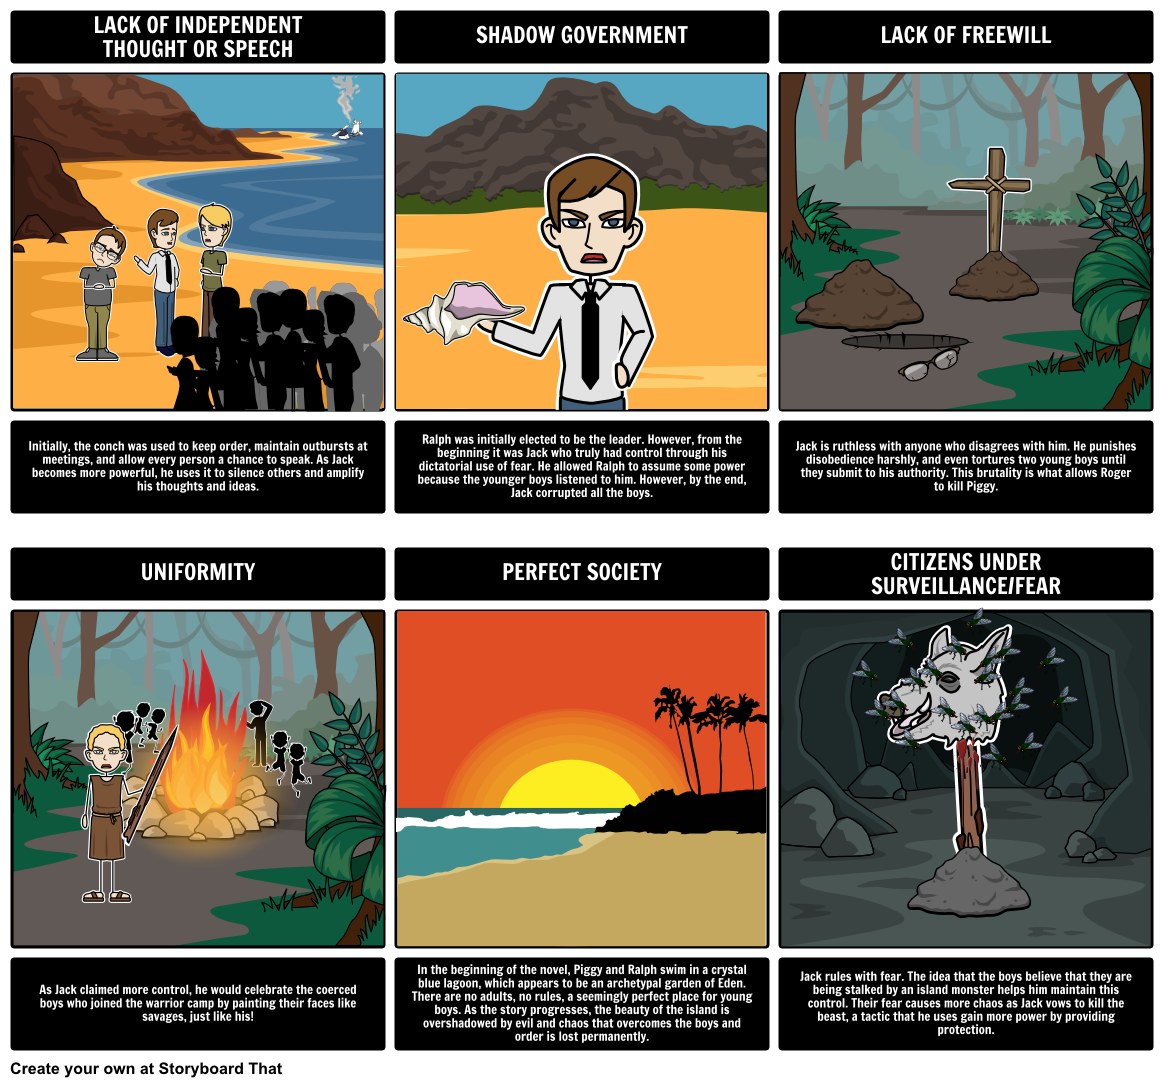 medium resolution of lord of the flies dystopia this storyboard outlines the examples of dystopia in lord of the flies by william golding created on storyboard that